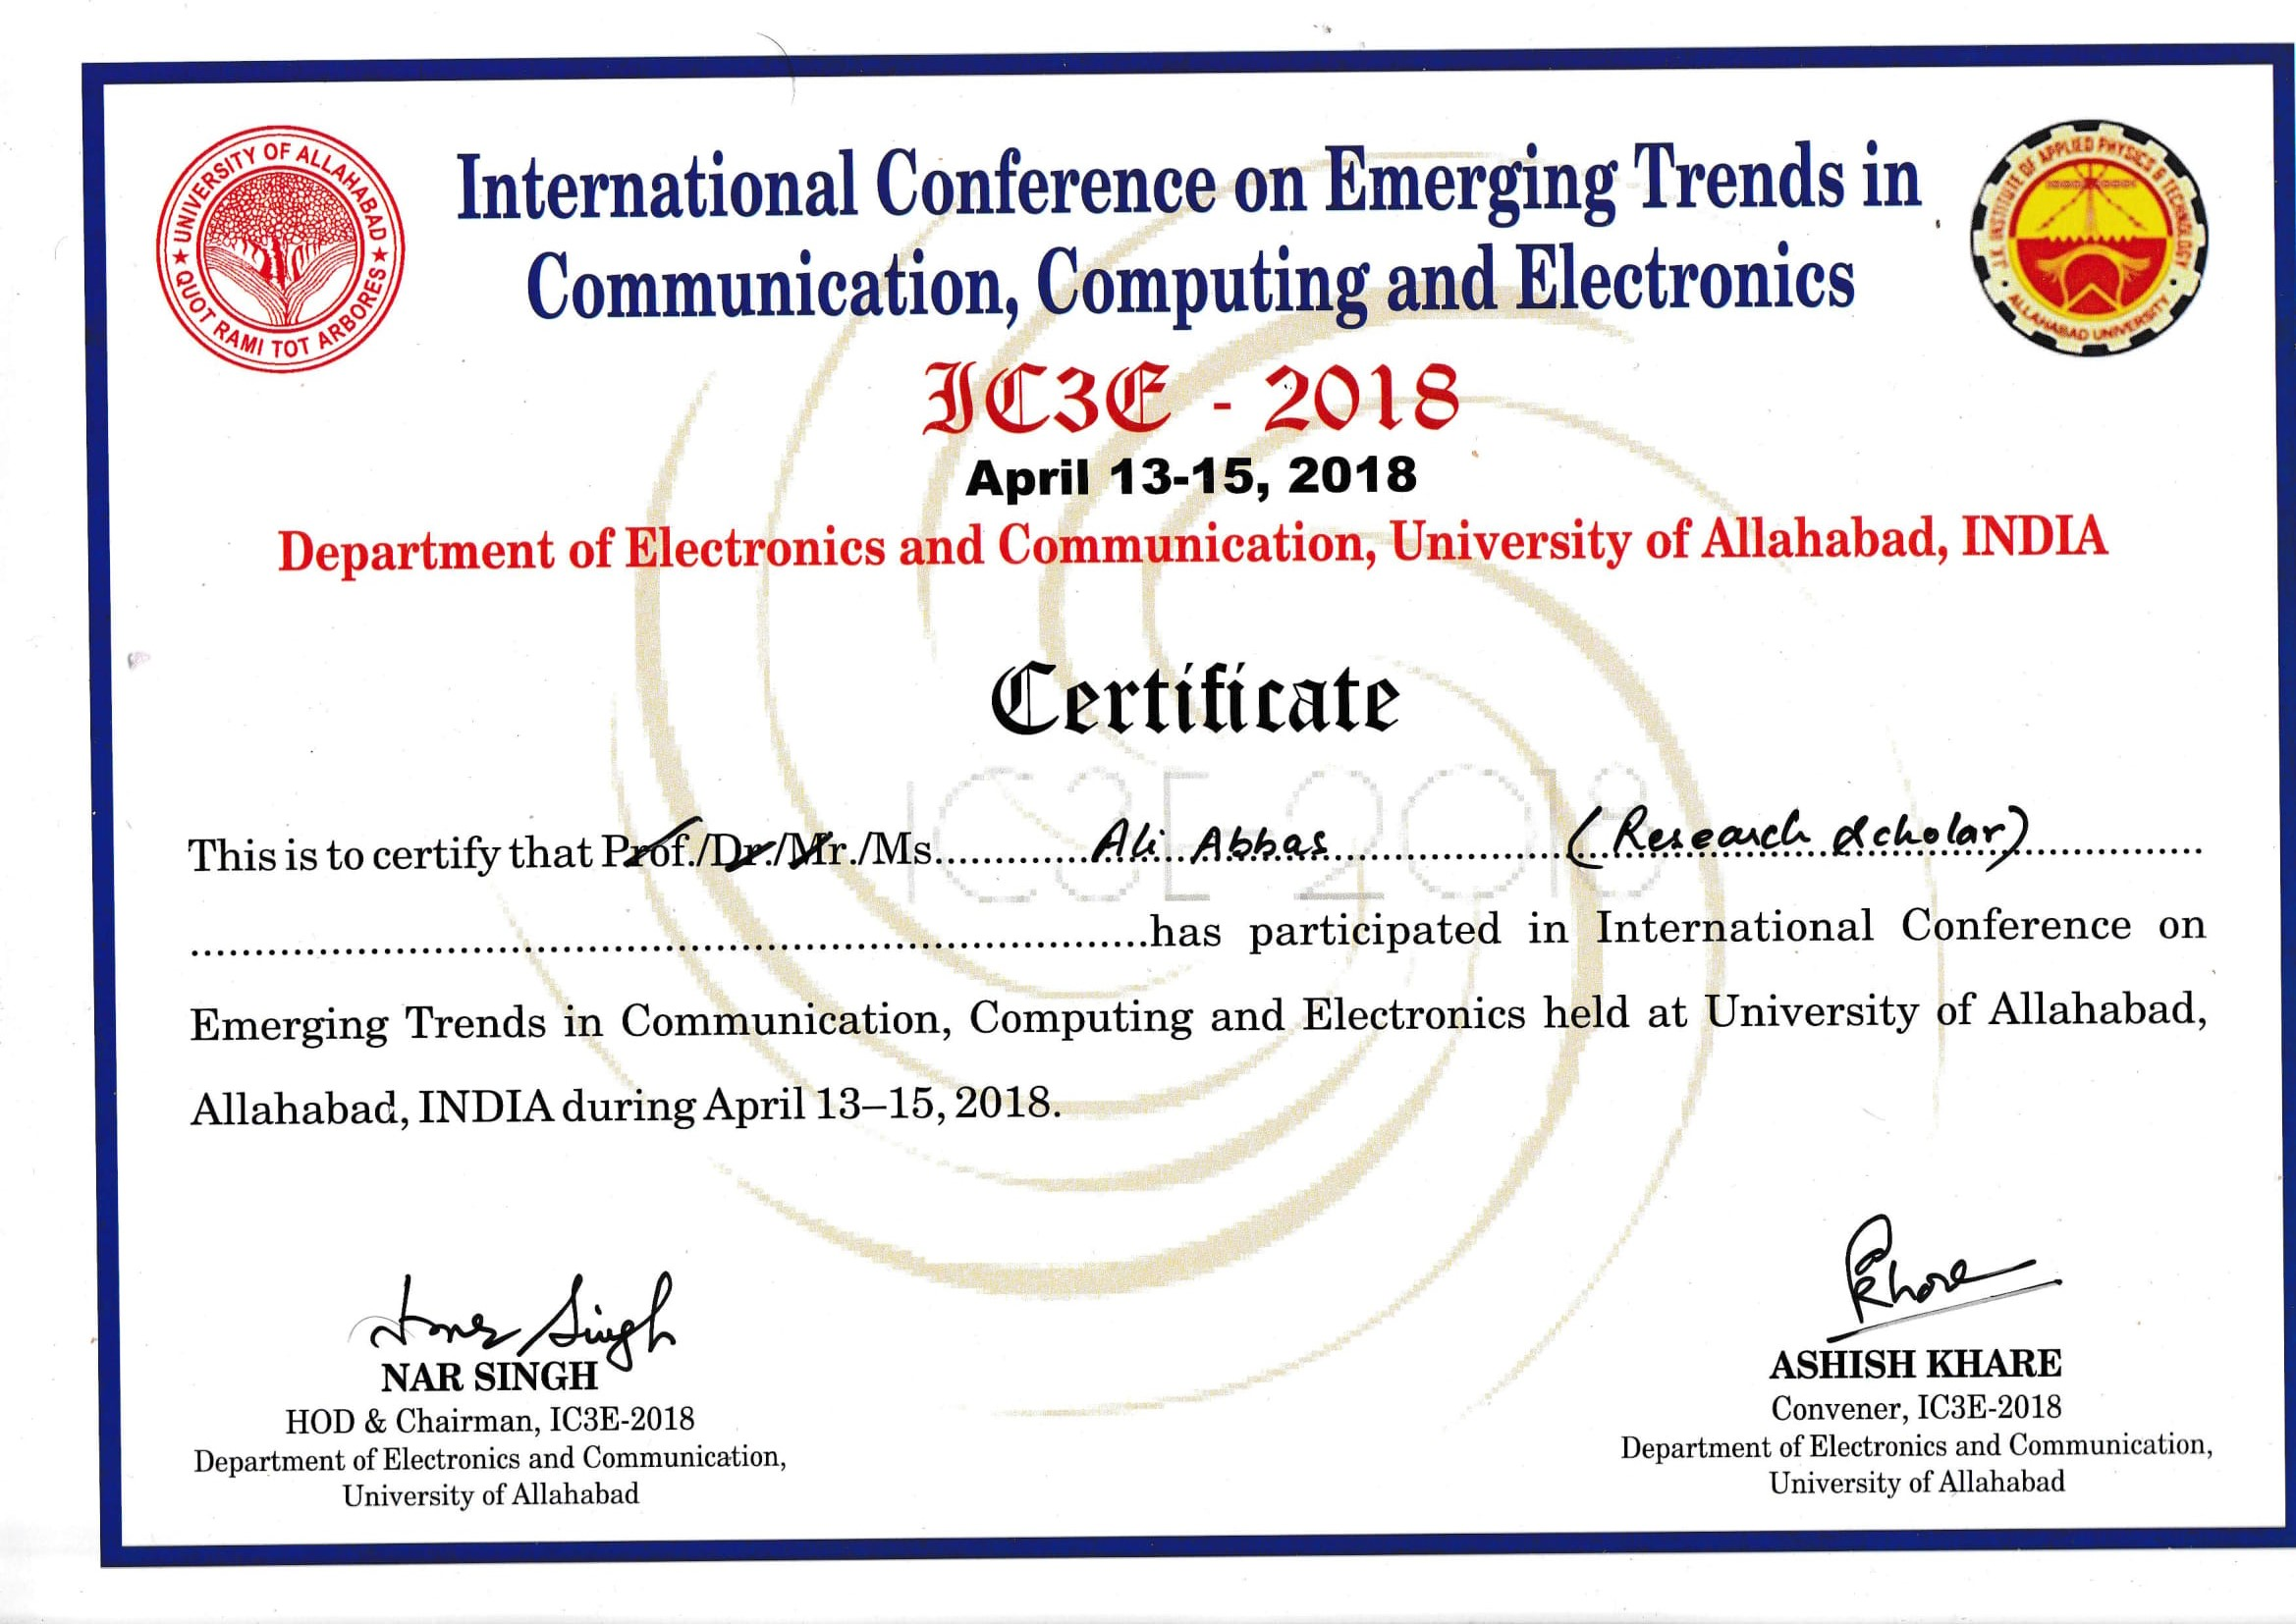 International Conference on Emerging Trends in Communication, Computing and Electronics